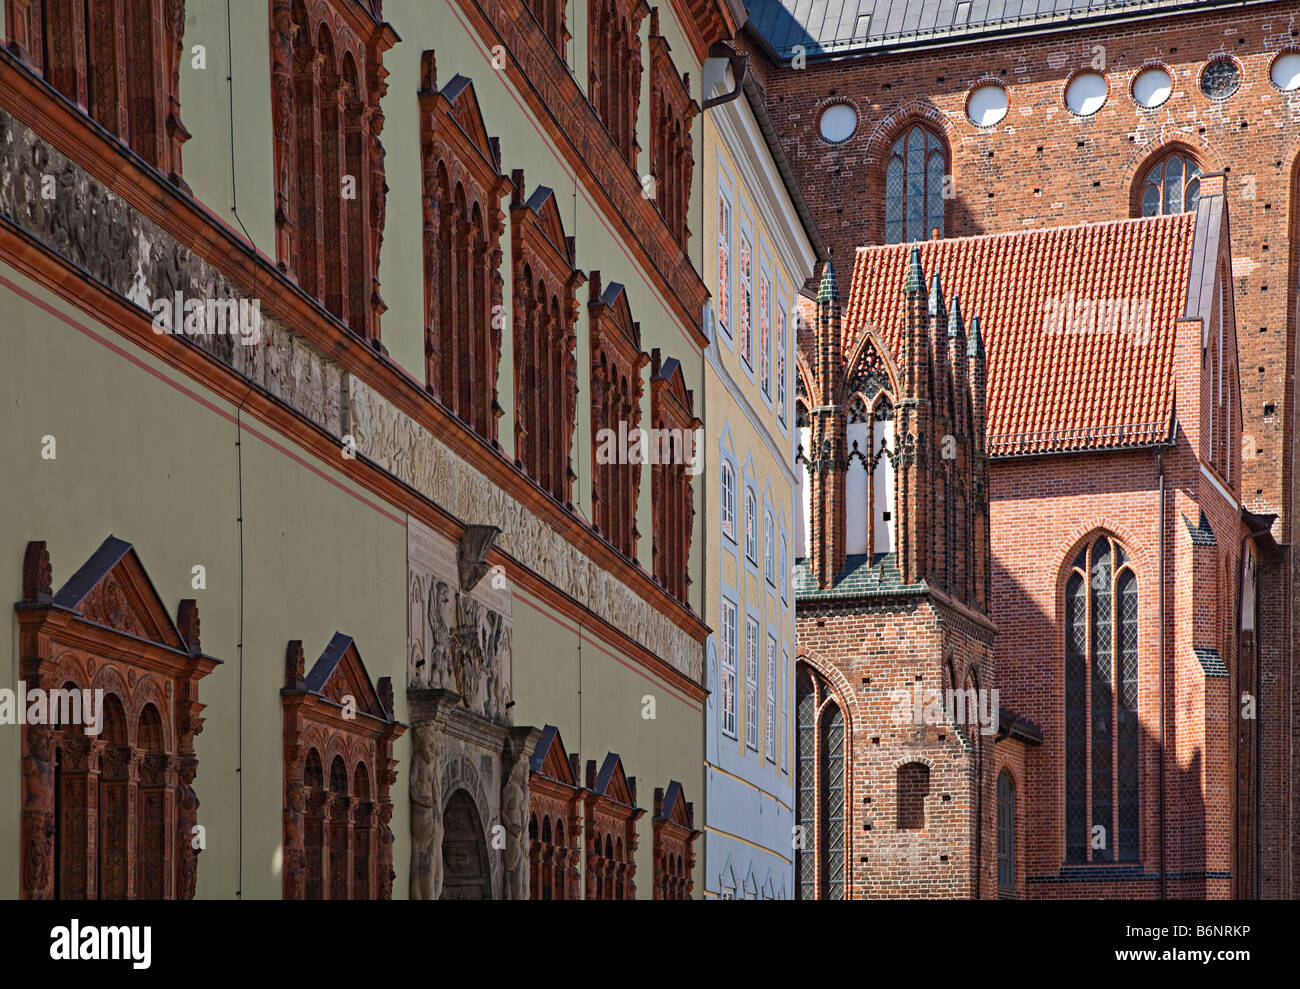 Church architecture Wismar Germany - Stock Image